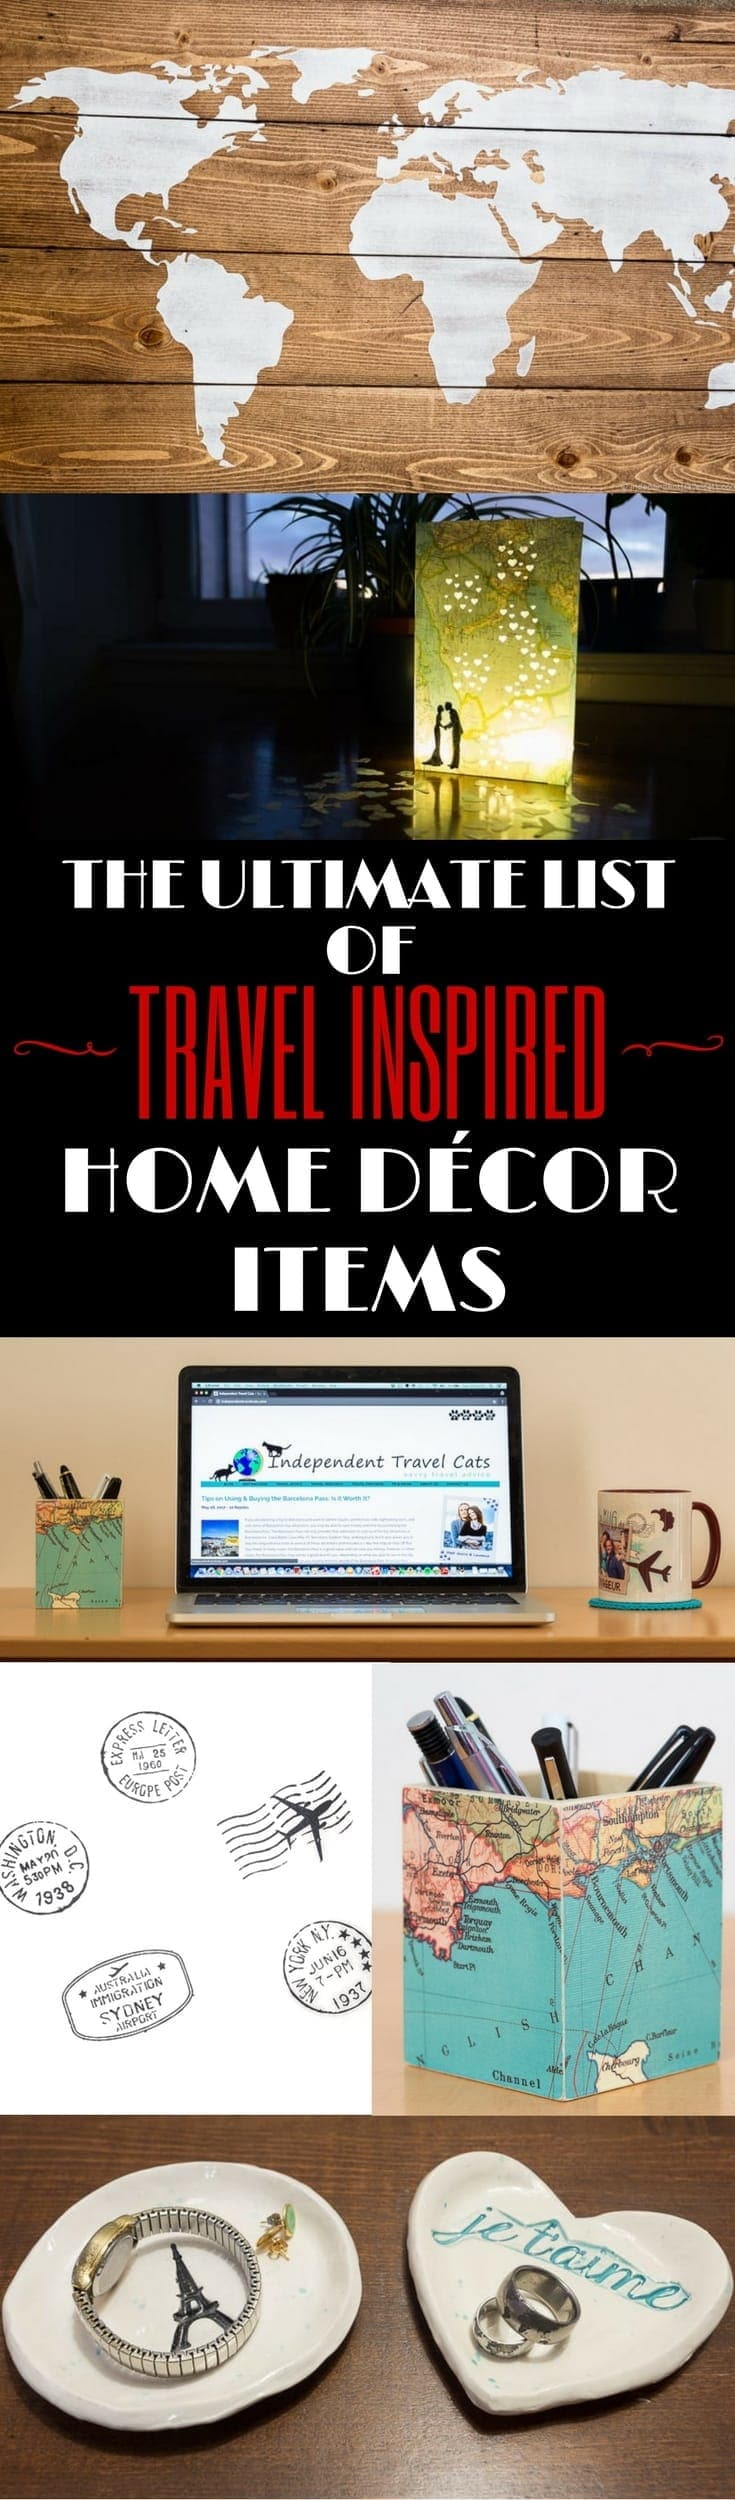 Ultimate List Of Travel Themed Home Decor Items For Every Room Your House Or